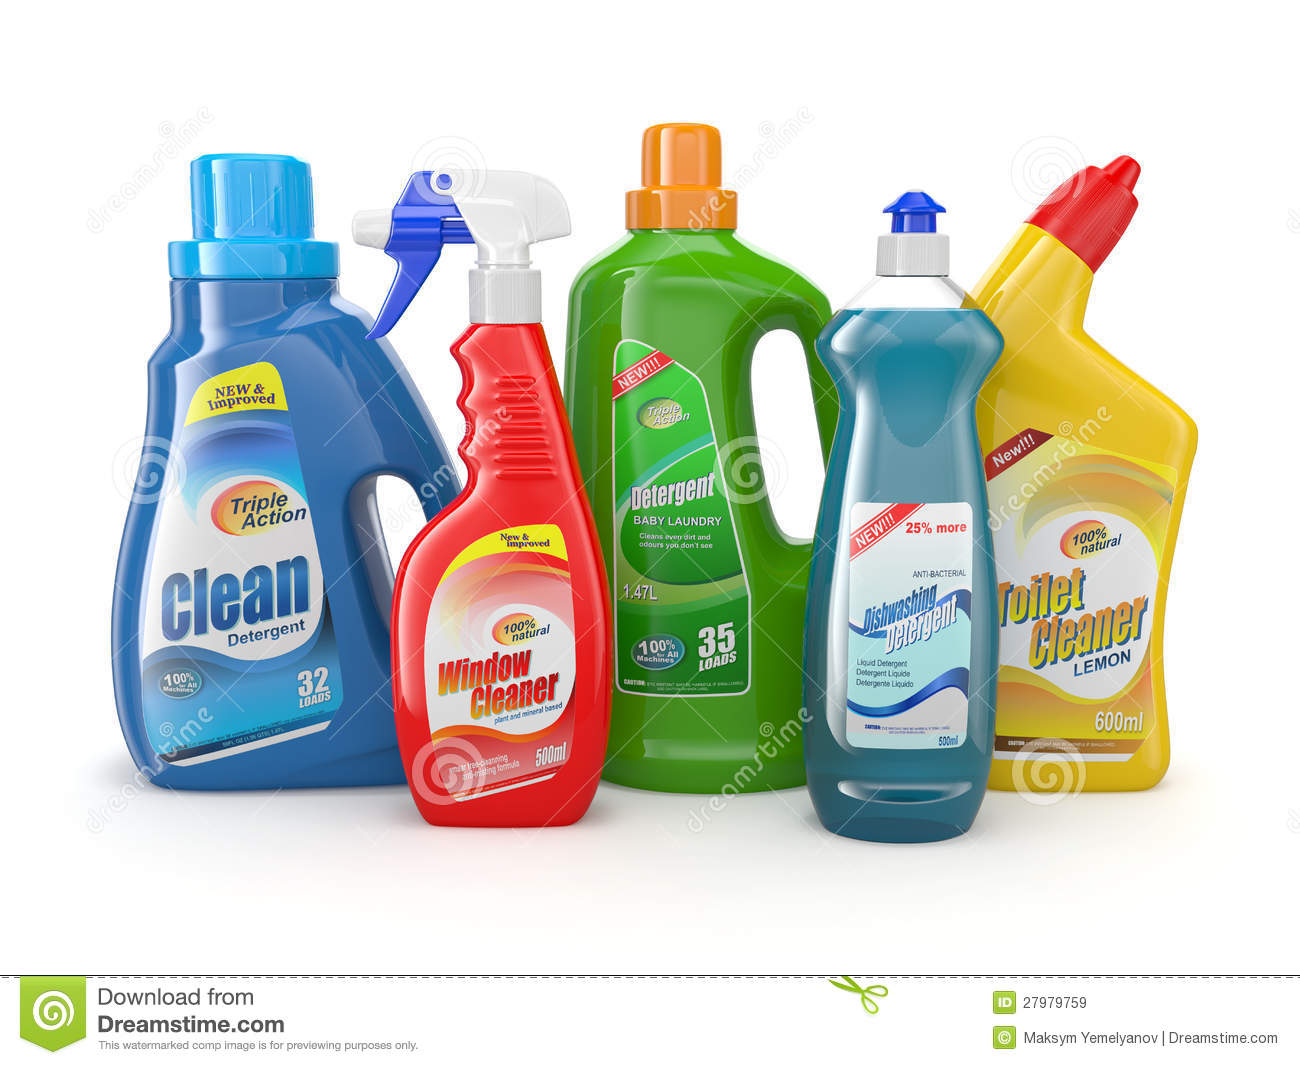 Cleaning bottles clip art - photo#11